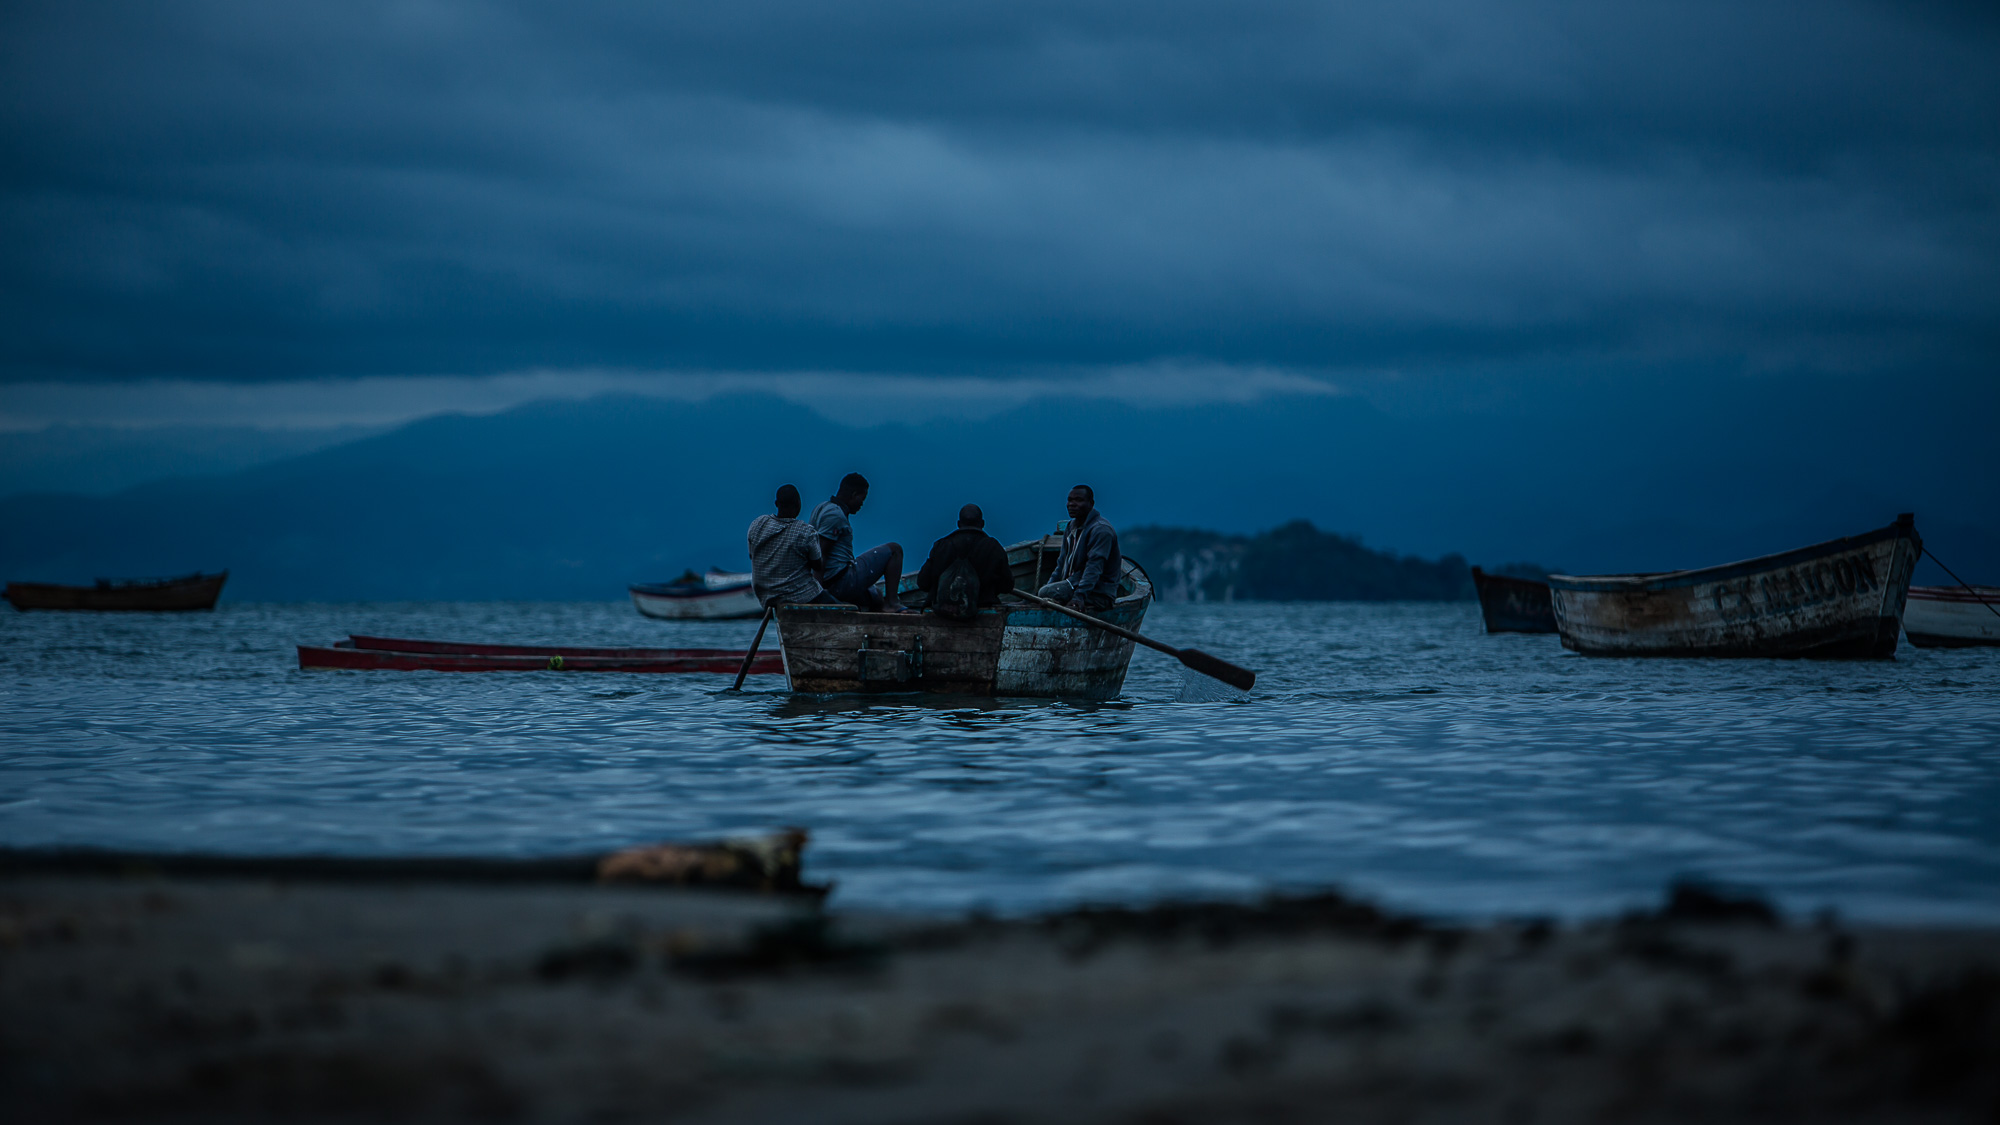 Fisherman approaching the shores of lake Malawi after the nights